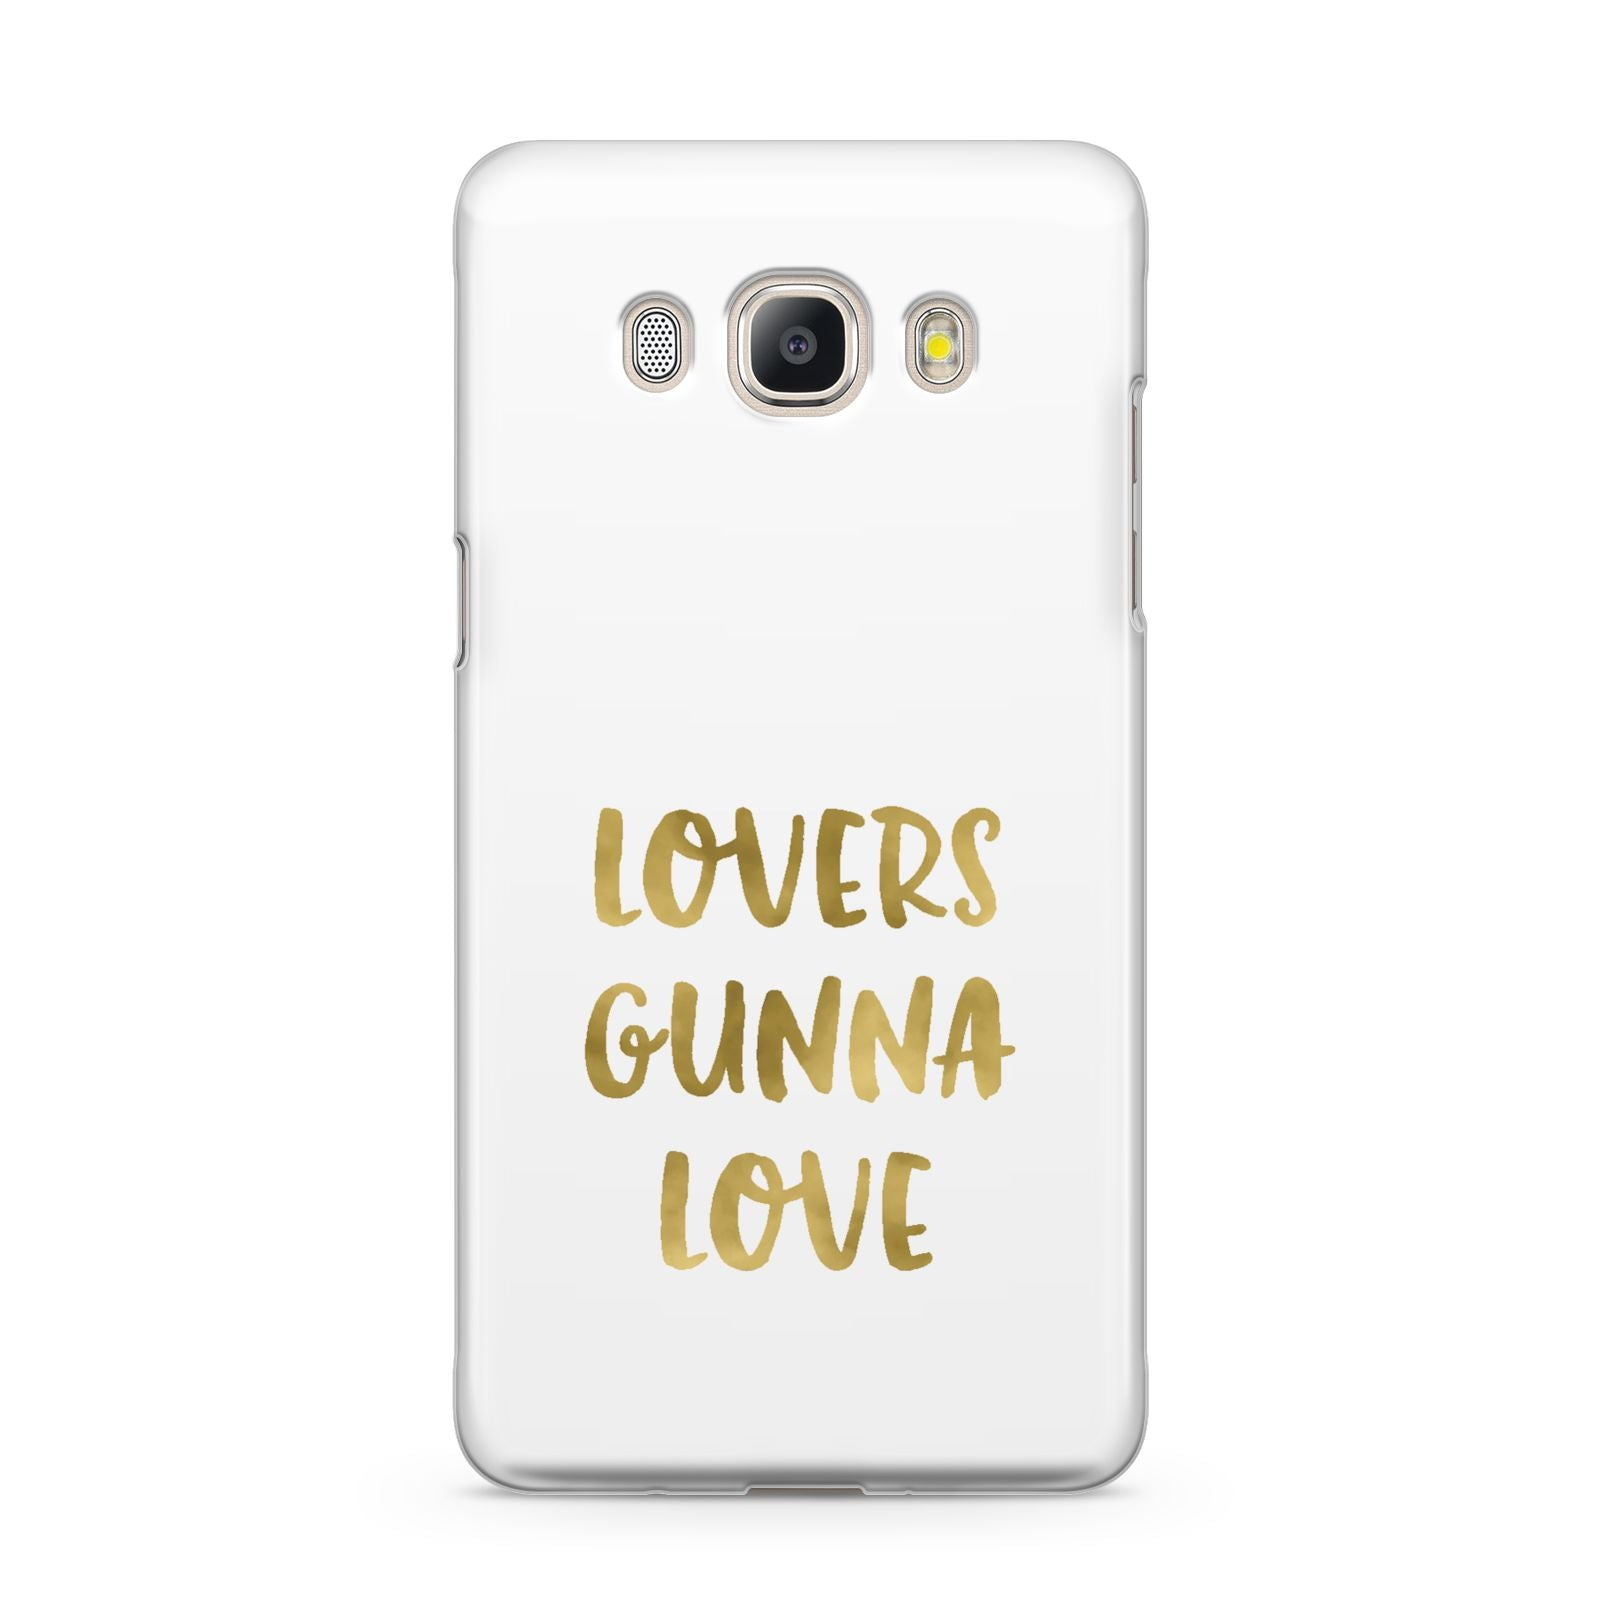 Lovers Gunna Love Real Gold Foil Samsung Galaxy J5 2016 Case